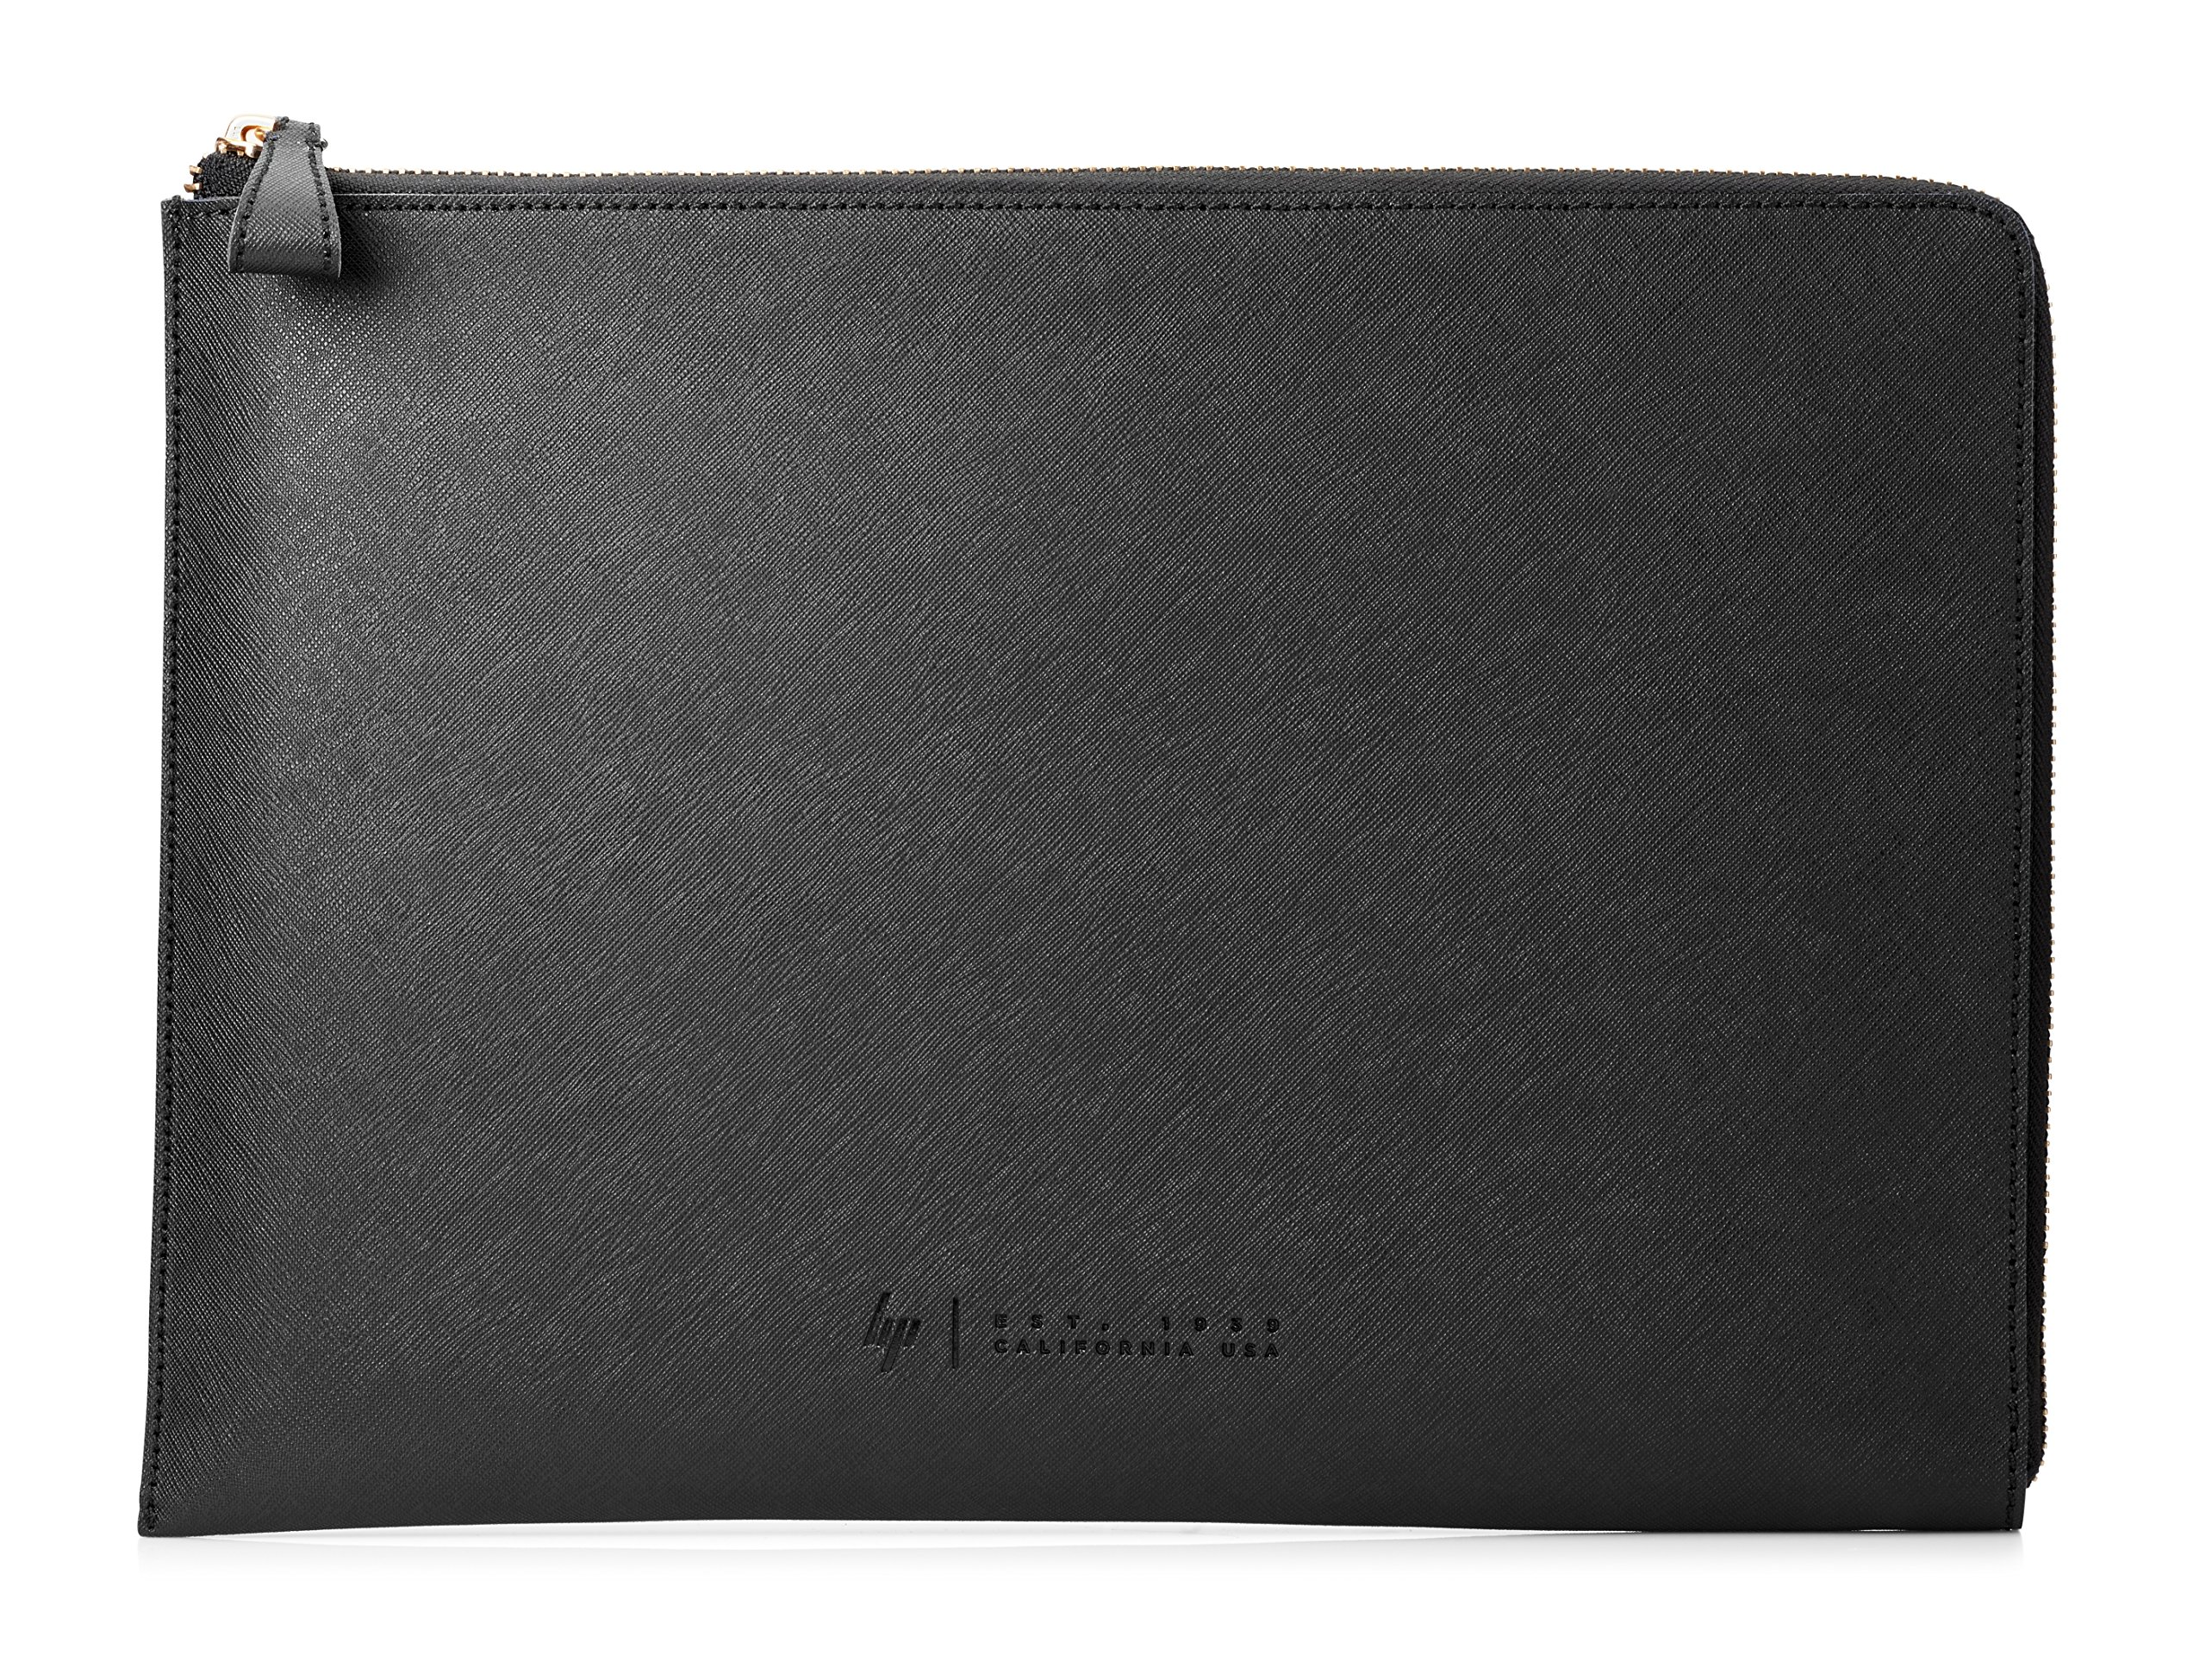 HP Spectre 13-inch Laptop Leather Sleeve (Dark Ash Silver with Copper-Finished Hardware)